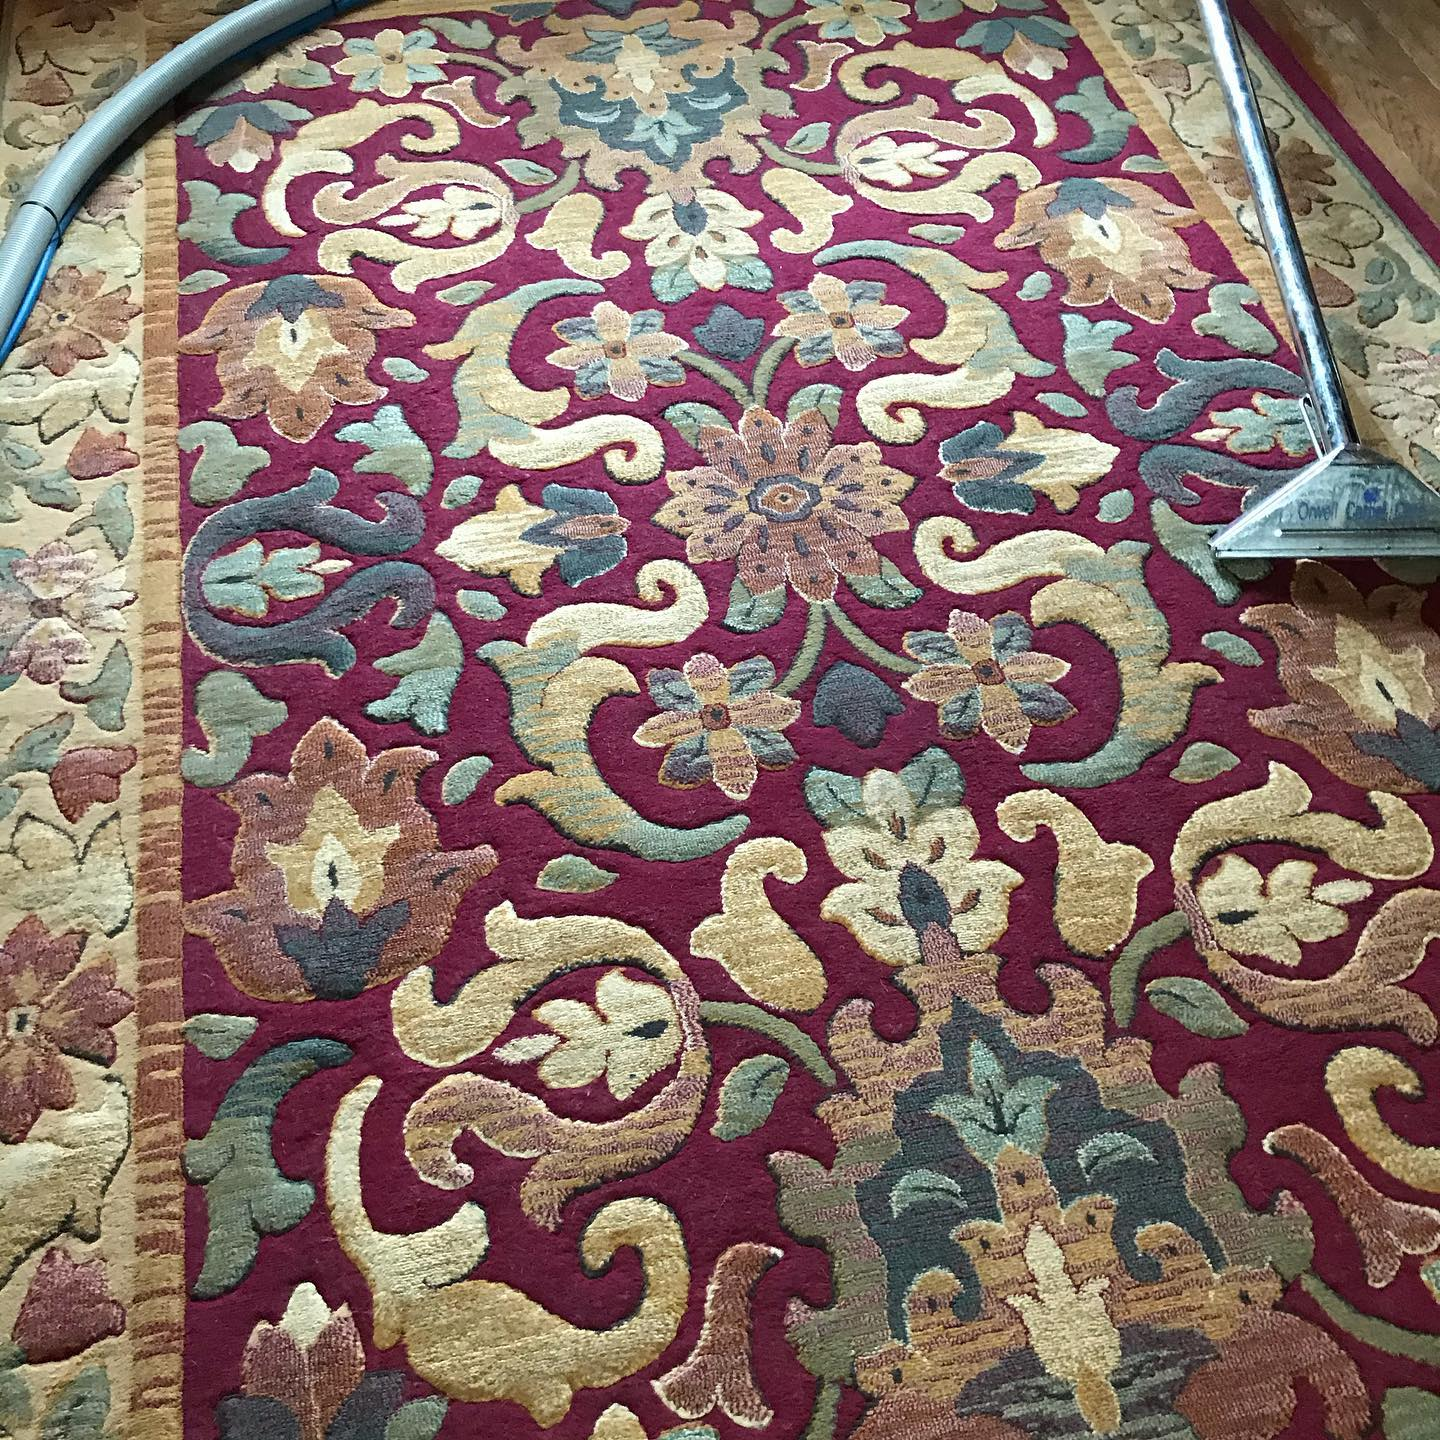 Rug Cleaning Orwell Carpet Care